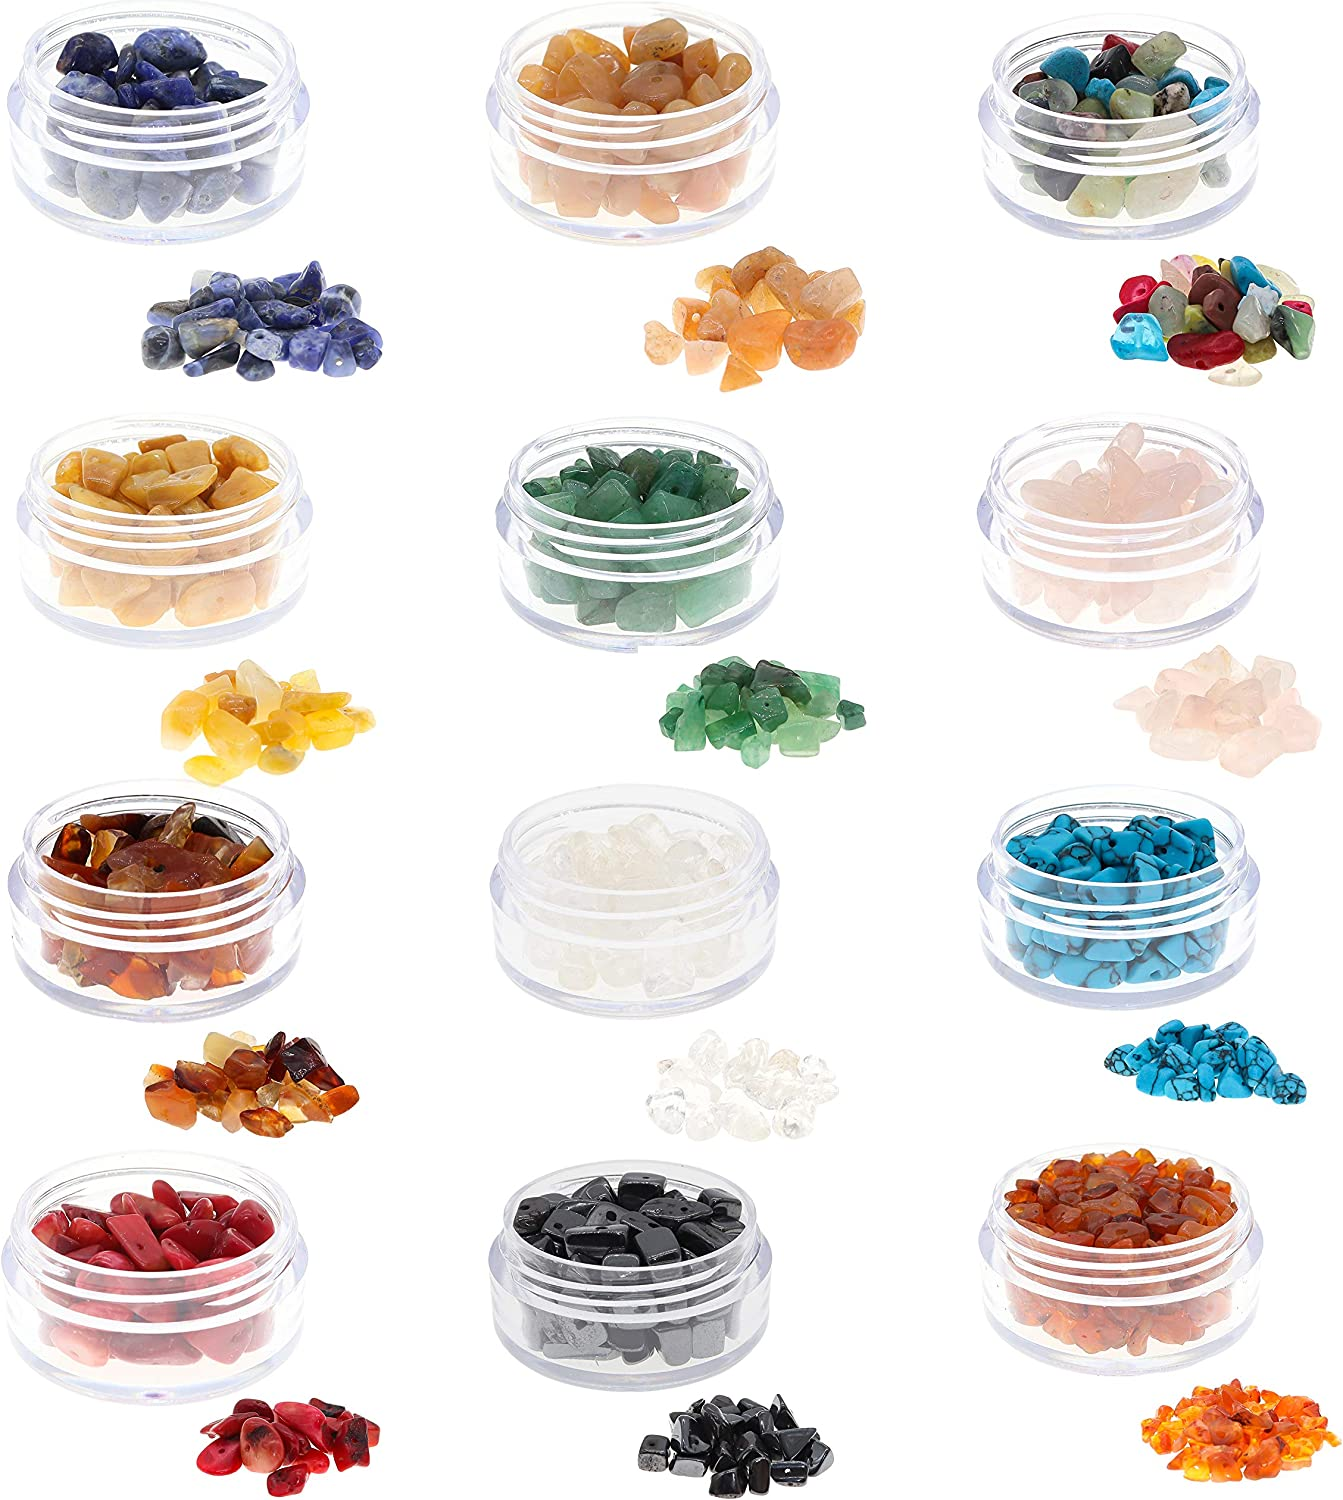 Fun Weevz 180 240 Pcs Natural Gemstone Beads For Jewelry Making Adults Semiprecious Stone Chips For Bracelets And Necklaces Chakra Stones For Healing Jewelry Arts Crafts Sewing